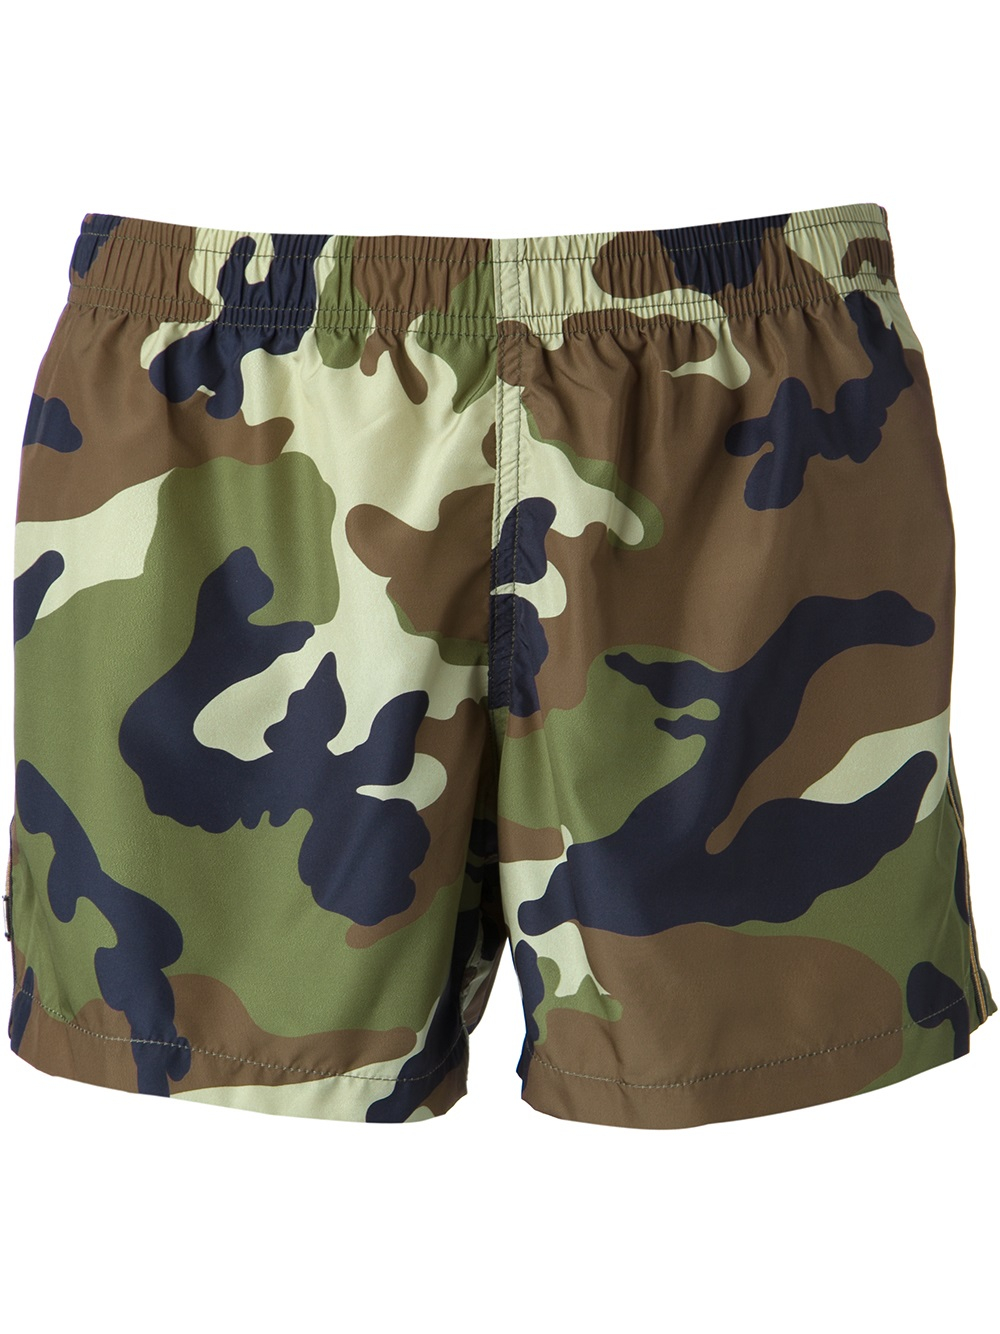 Lyst - Dondup Camouflage Swim Shorts in Green for Men 2d7bcbbd7